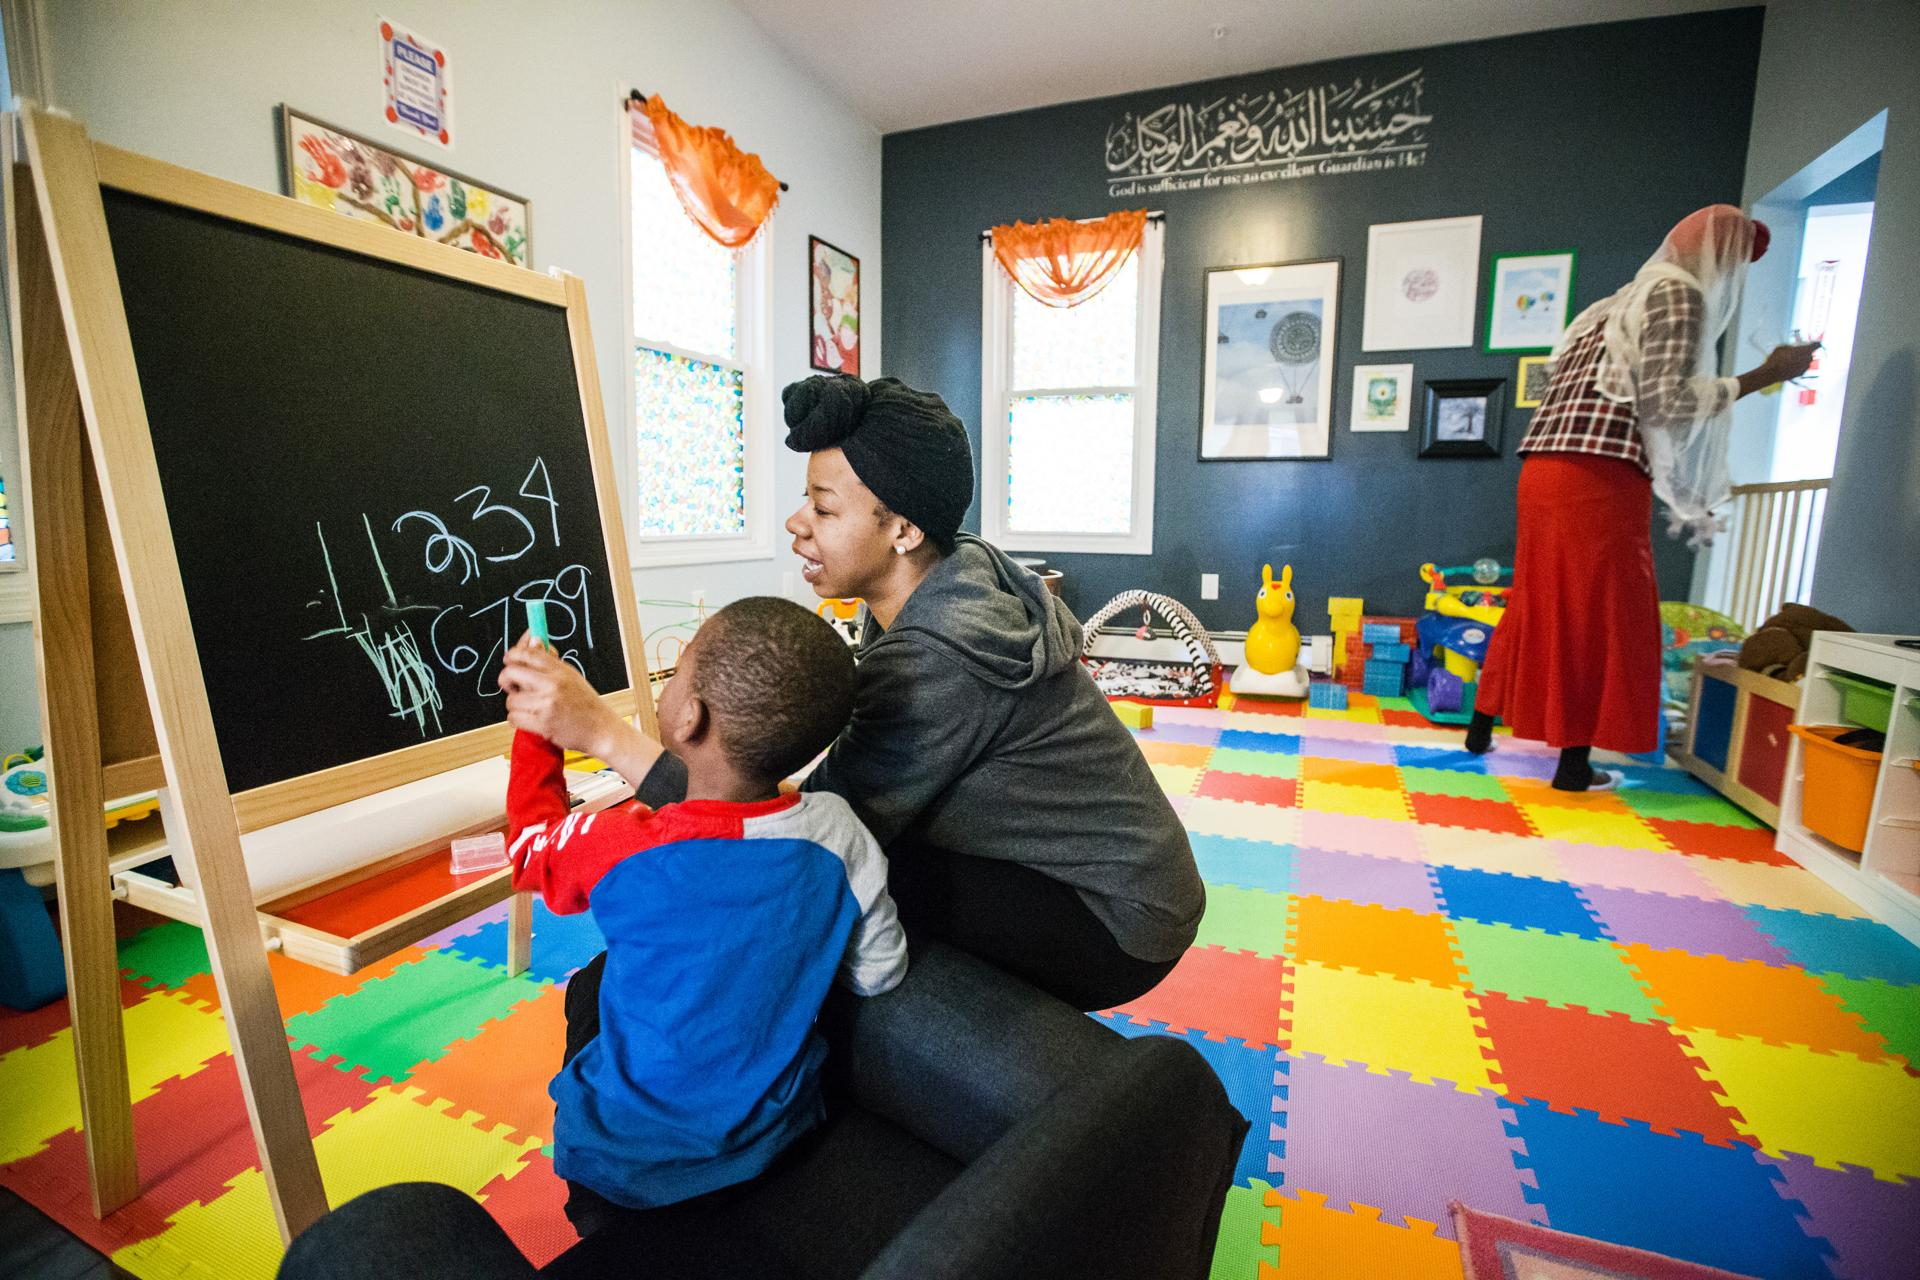 04/26/2017 BOSTON, MA Resident Samyha (cq) and her son Jeremyha (cq) 5, play together at The Amal Women's Center in Boston. (Aram Boghosian for The Boston Globe)